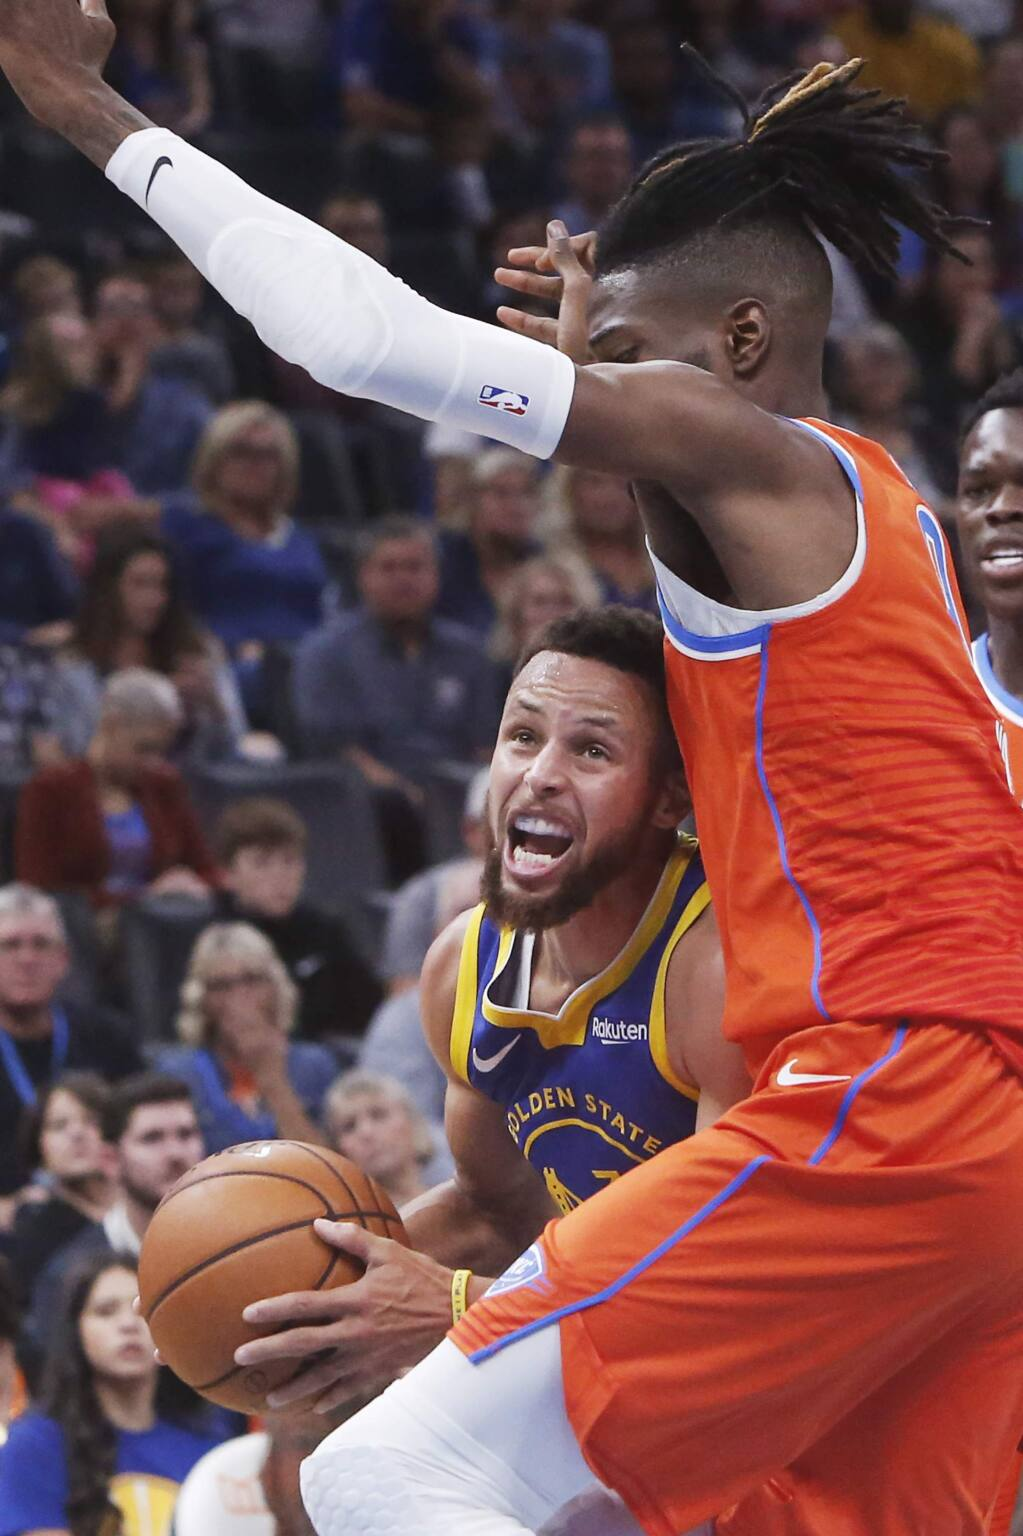 Golden State Warriors guard Stephen Curry, left, drives against Oklahoma City Thunder forward Nerlens Noel in the first half of an NBA basketball game Sunday, Oct. 27, 2019, in Oklahoma City. (AP Photo/Sue Ogrocki)